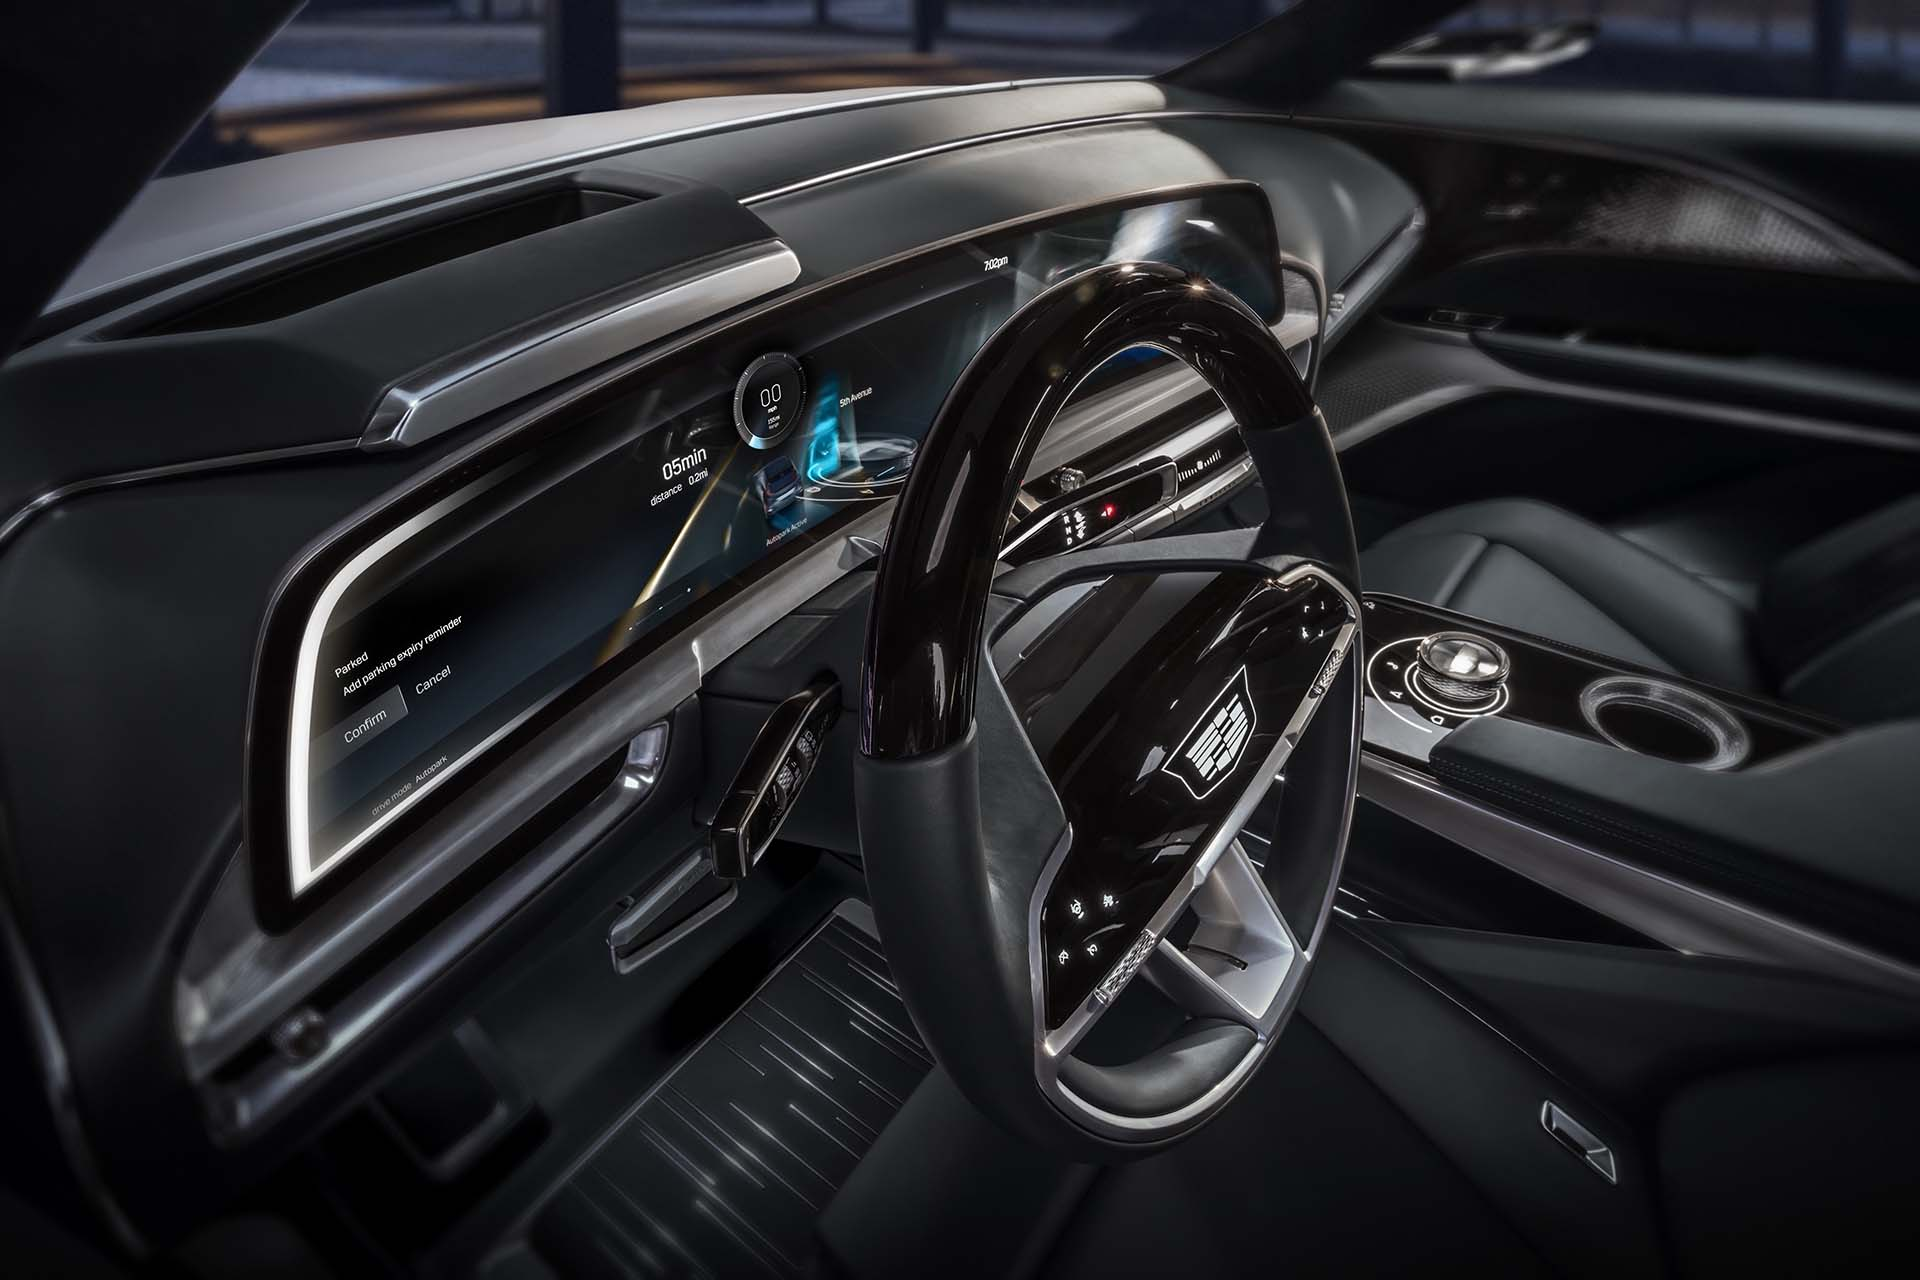 Cadillac LYRIQ's new electric vehicle architecture opens up po